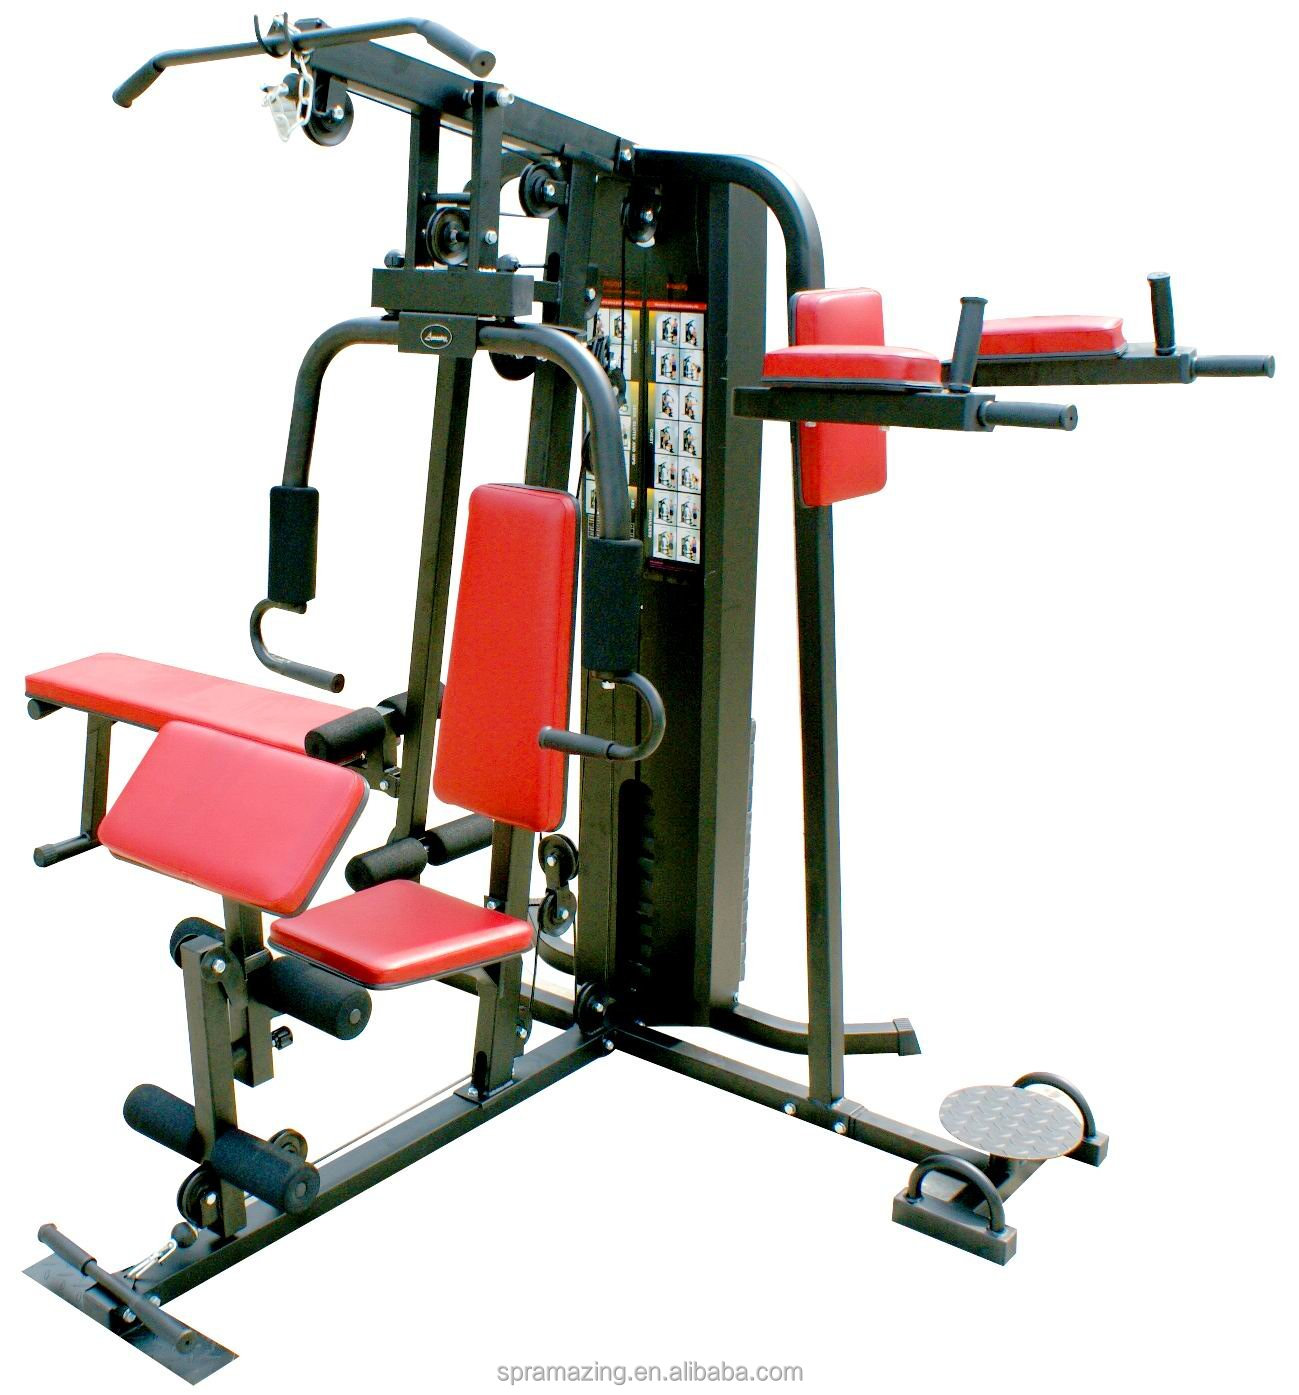 4 station multi gym equipment ama 7000e cheap price home gym equipment buy multi station gym 4. Black Bedroom Furniture Sets. Home Design Ideas